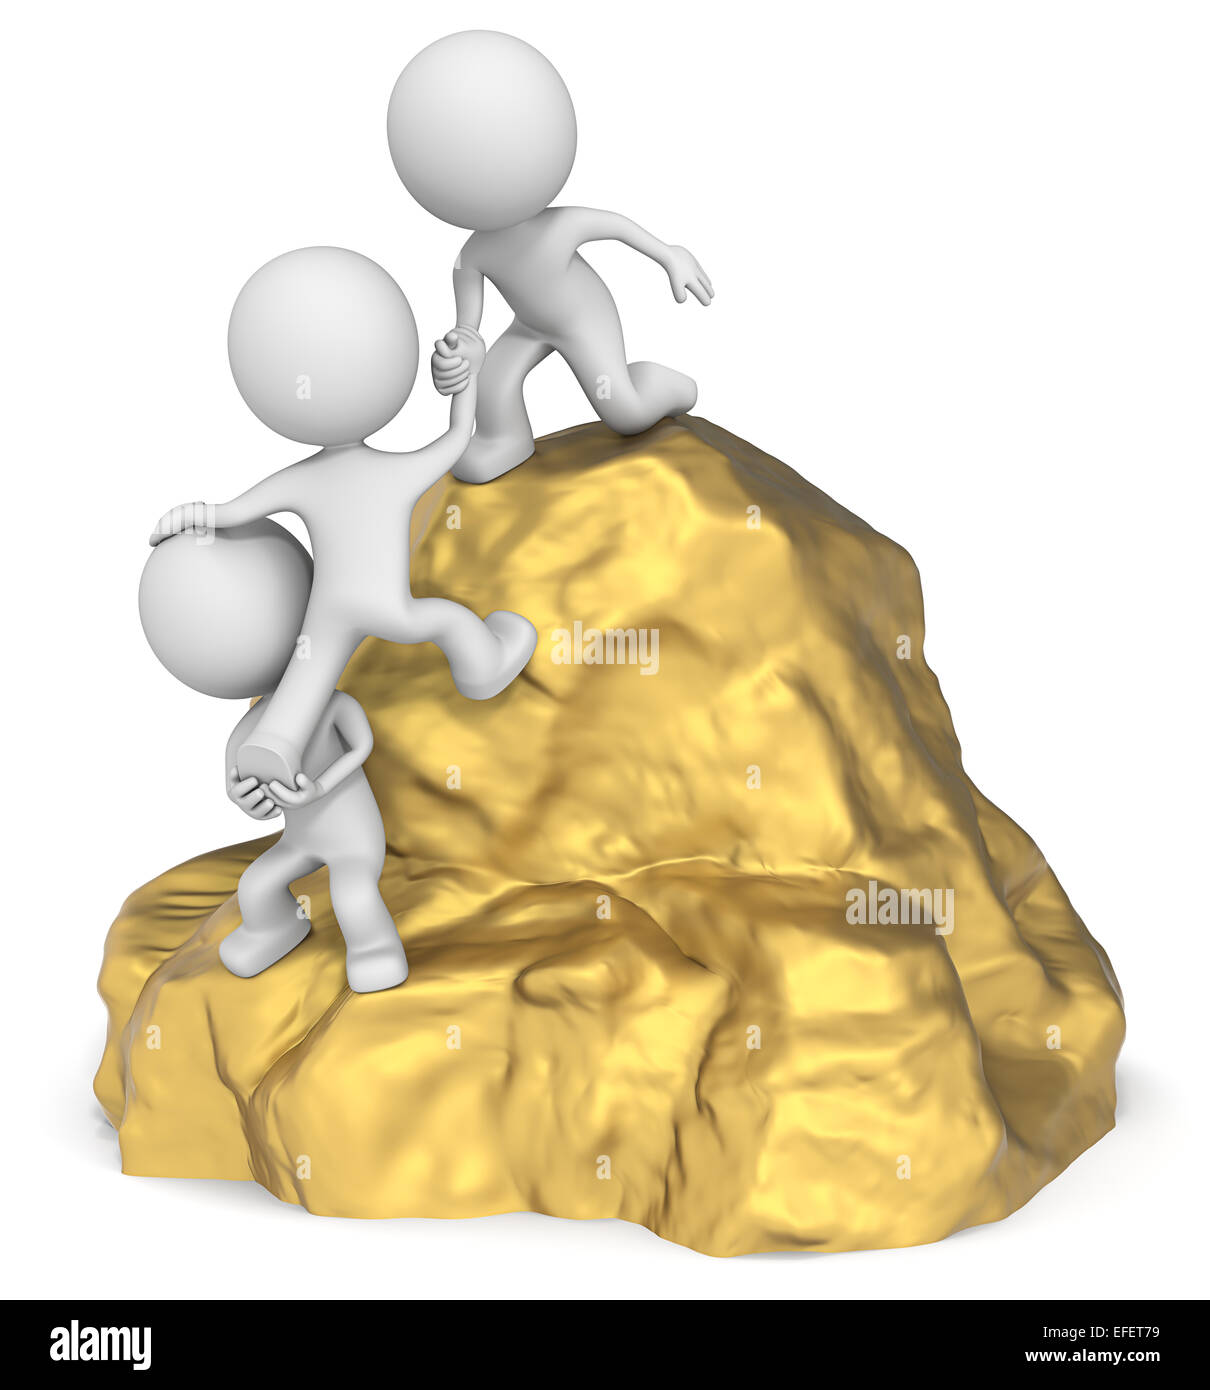 The dude 3D character x3 climbing a Gold Mountain. - Stock Image